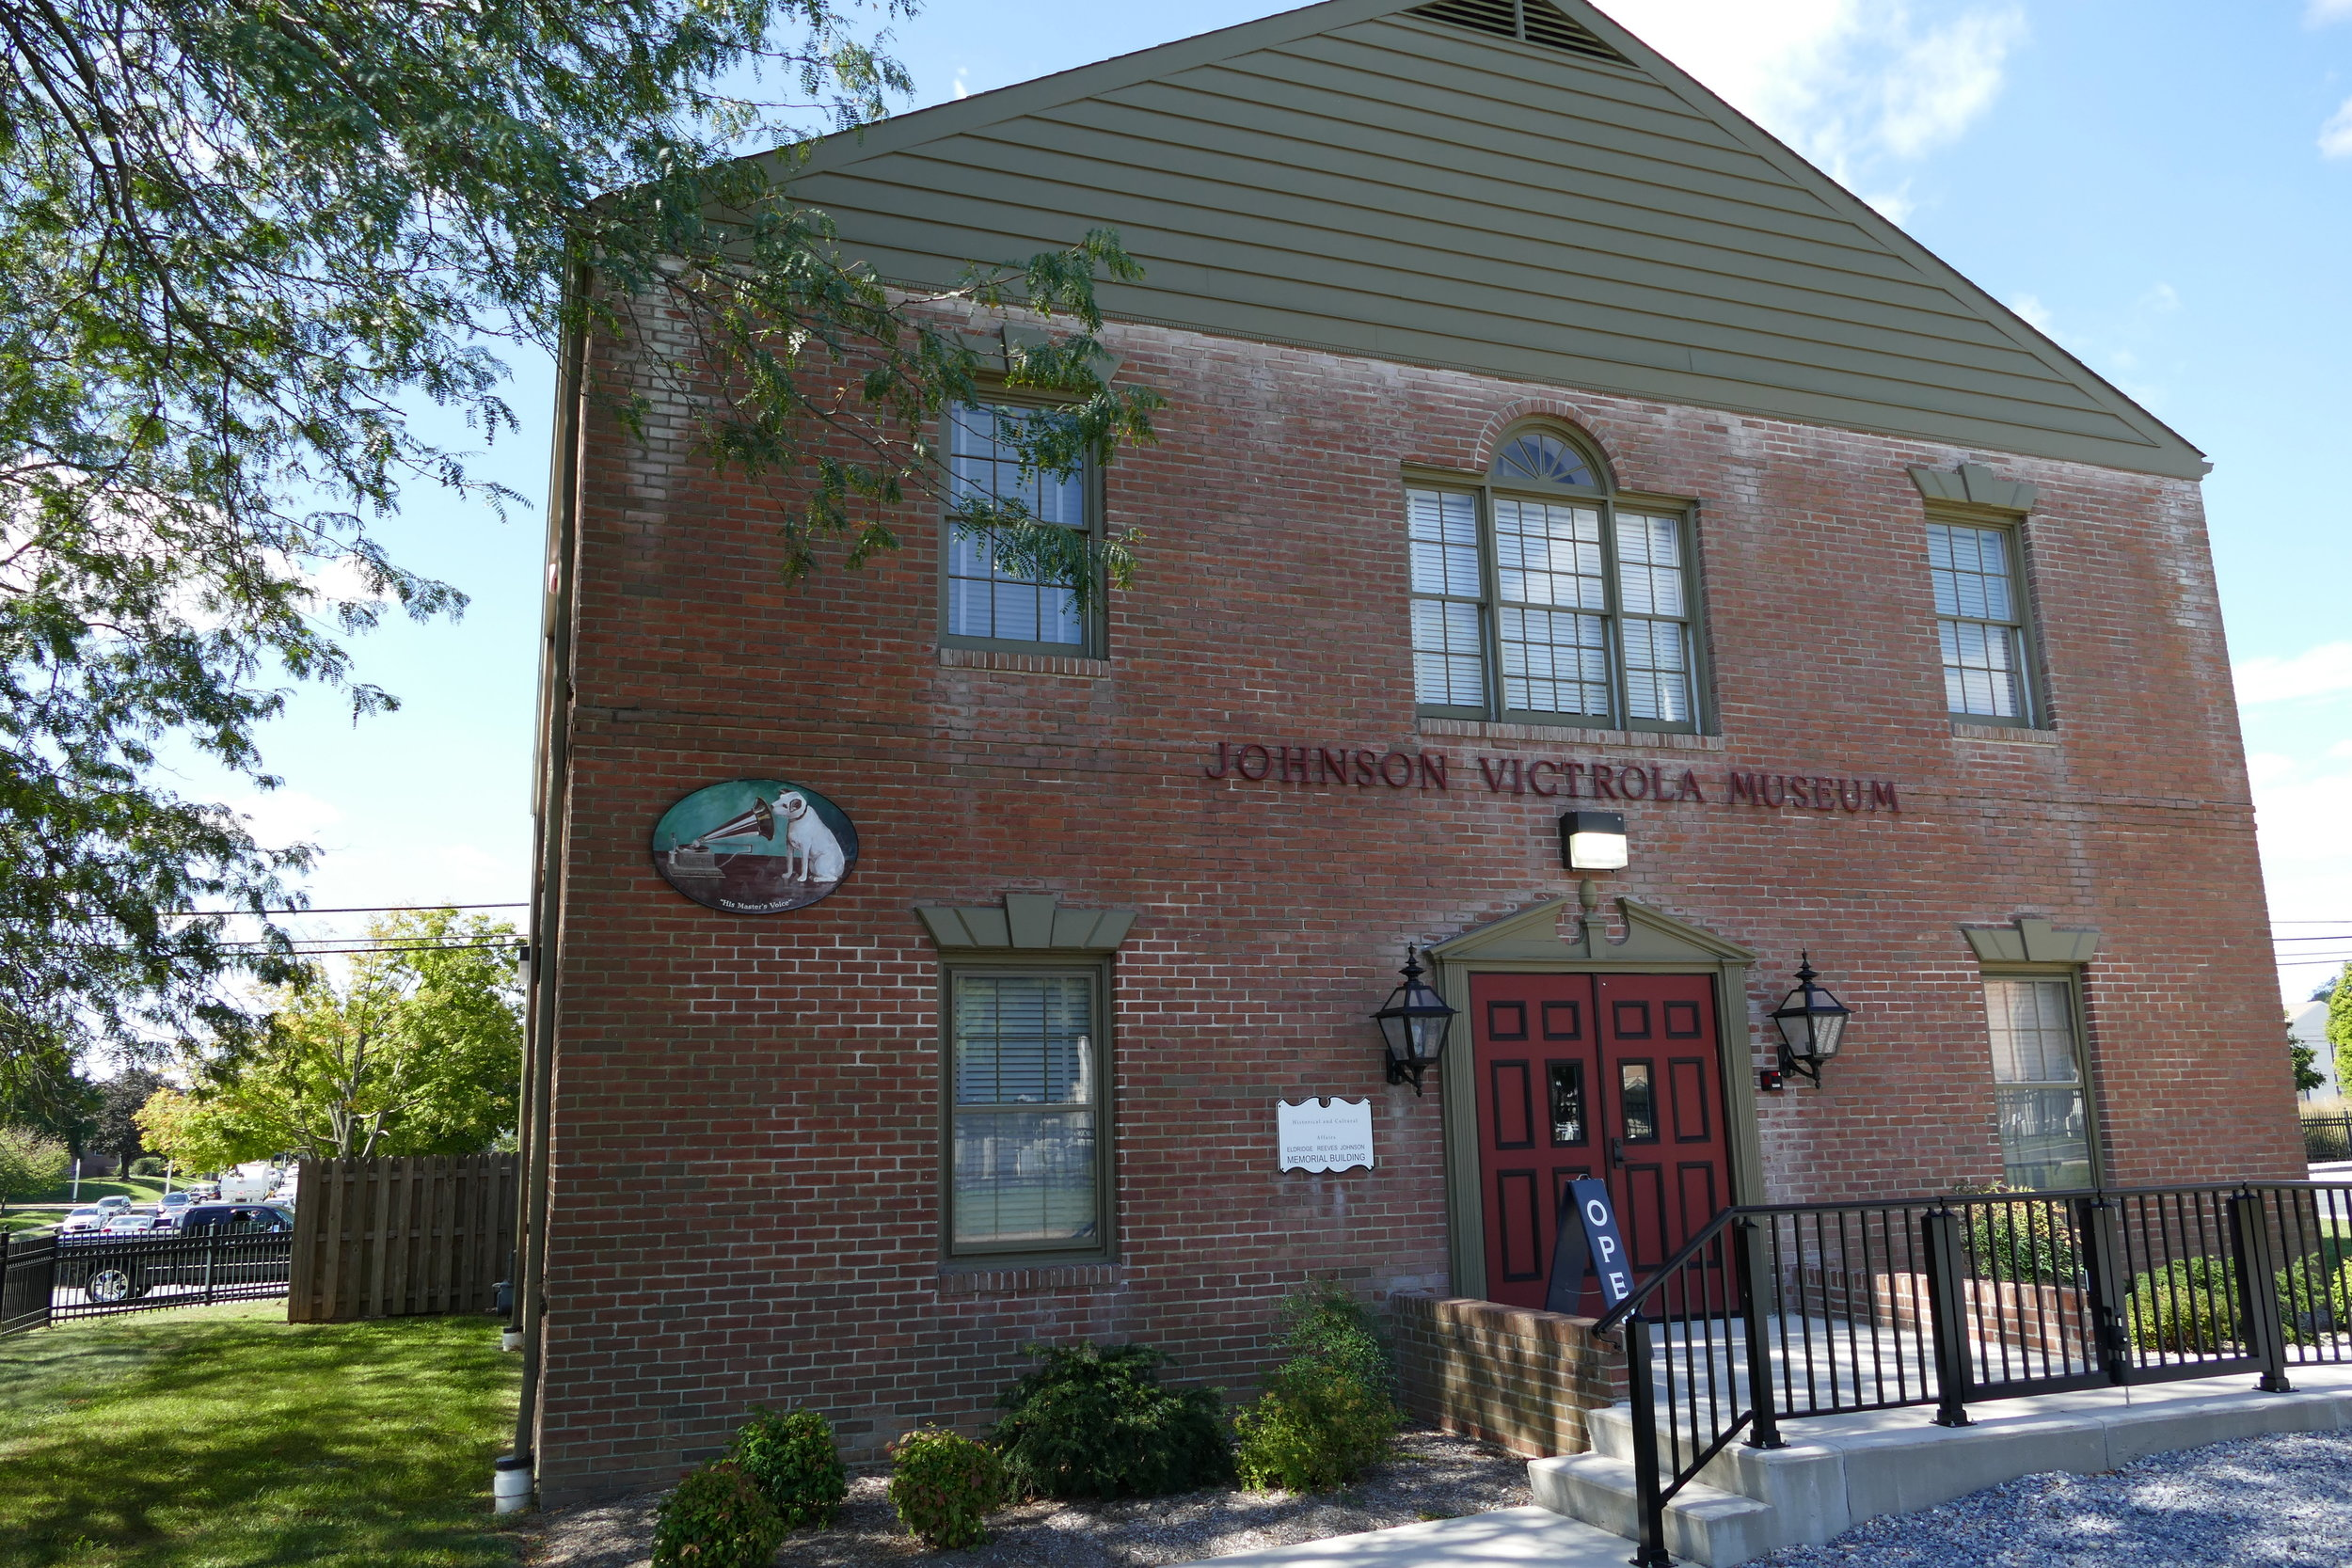 The Johnson Victrola Museum was the initial incentive to visit downtown Dover.